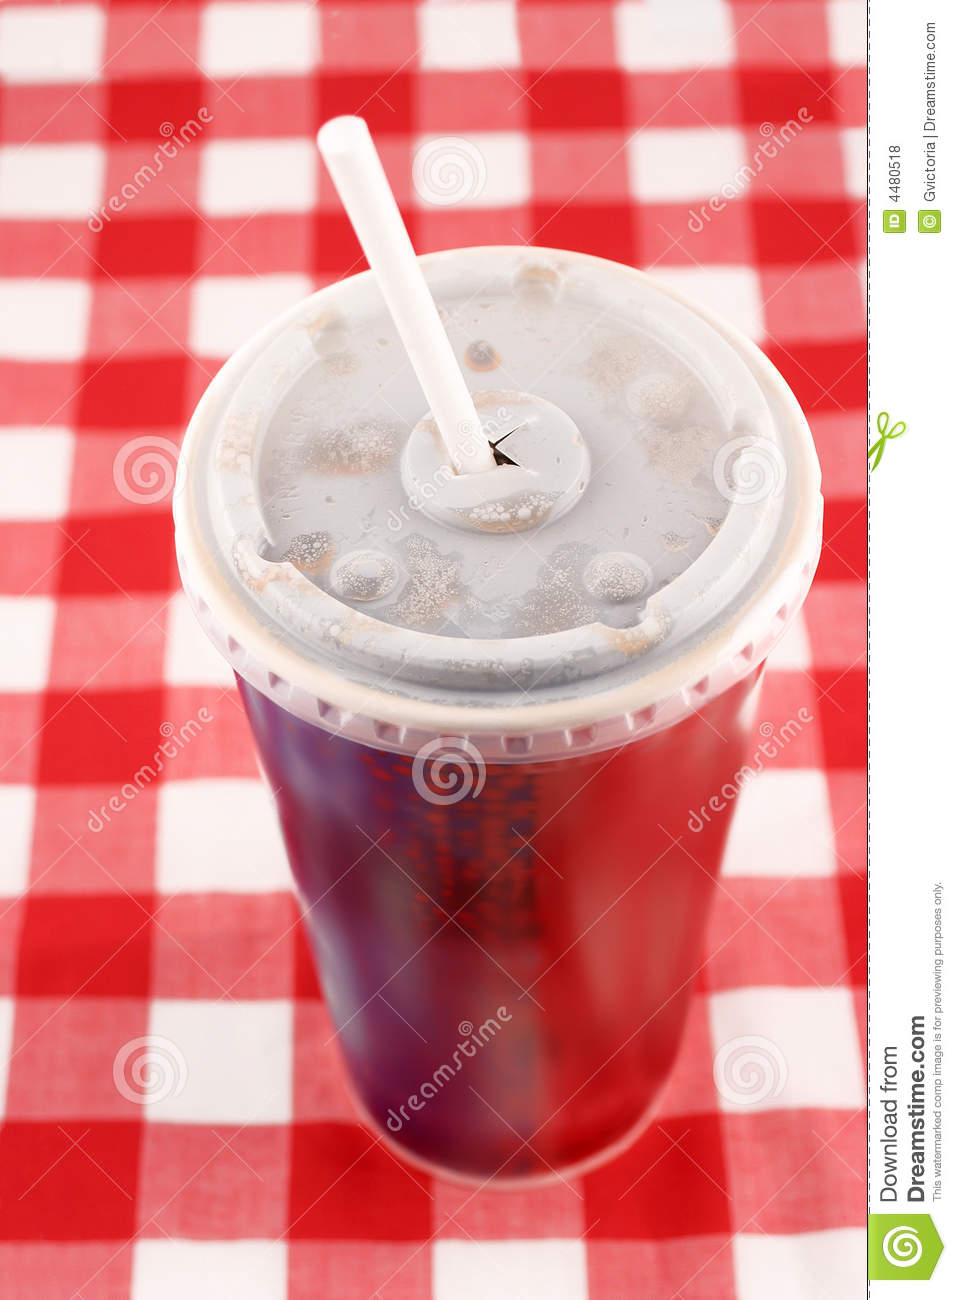 takeout soft drink royalty free stock photos